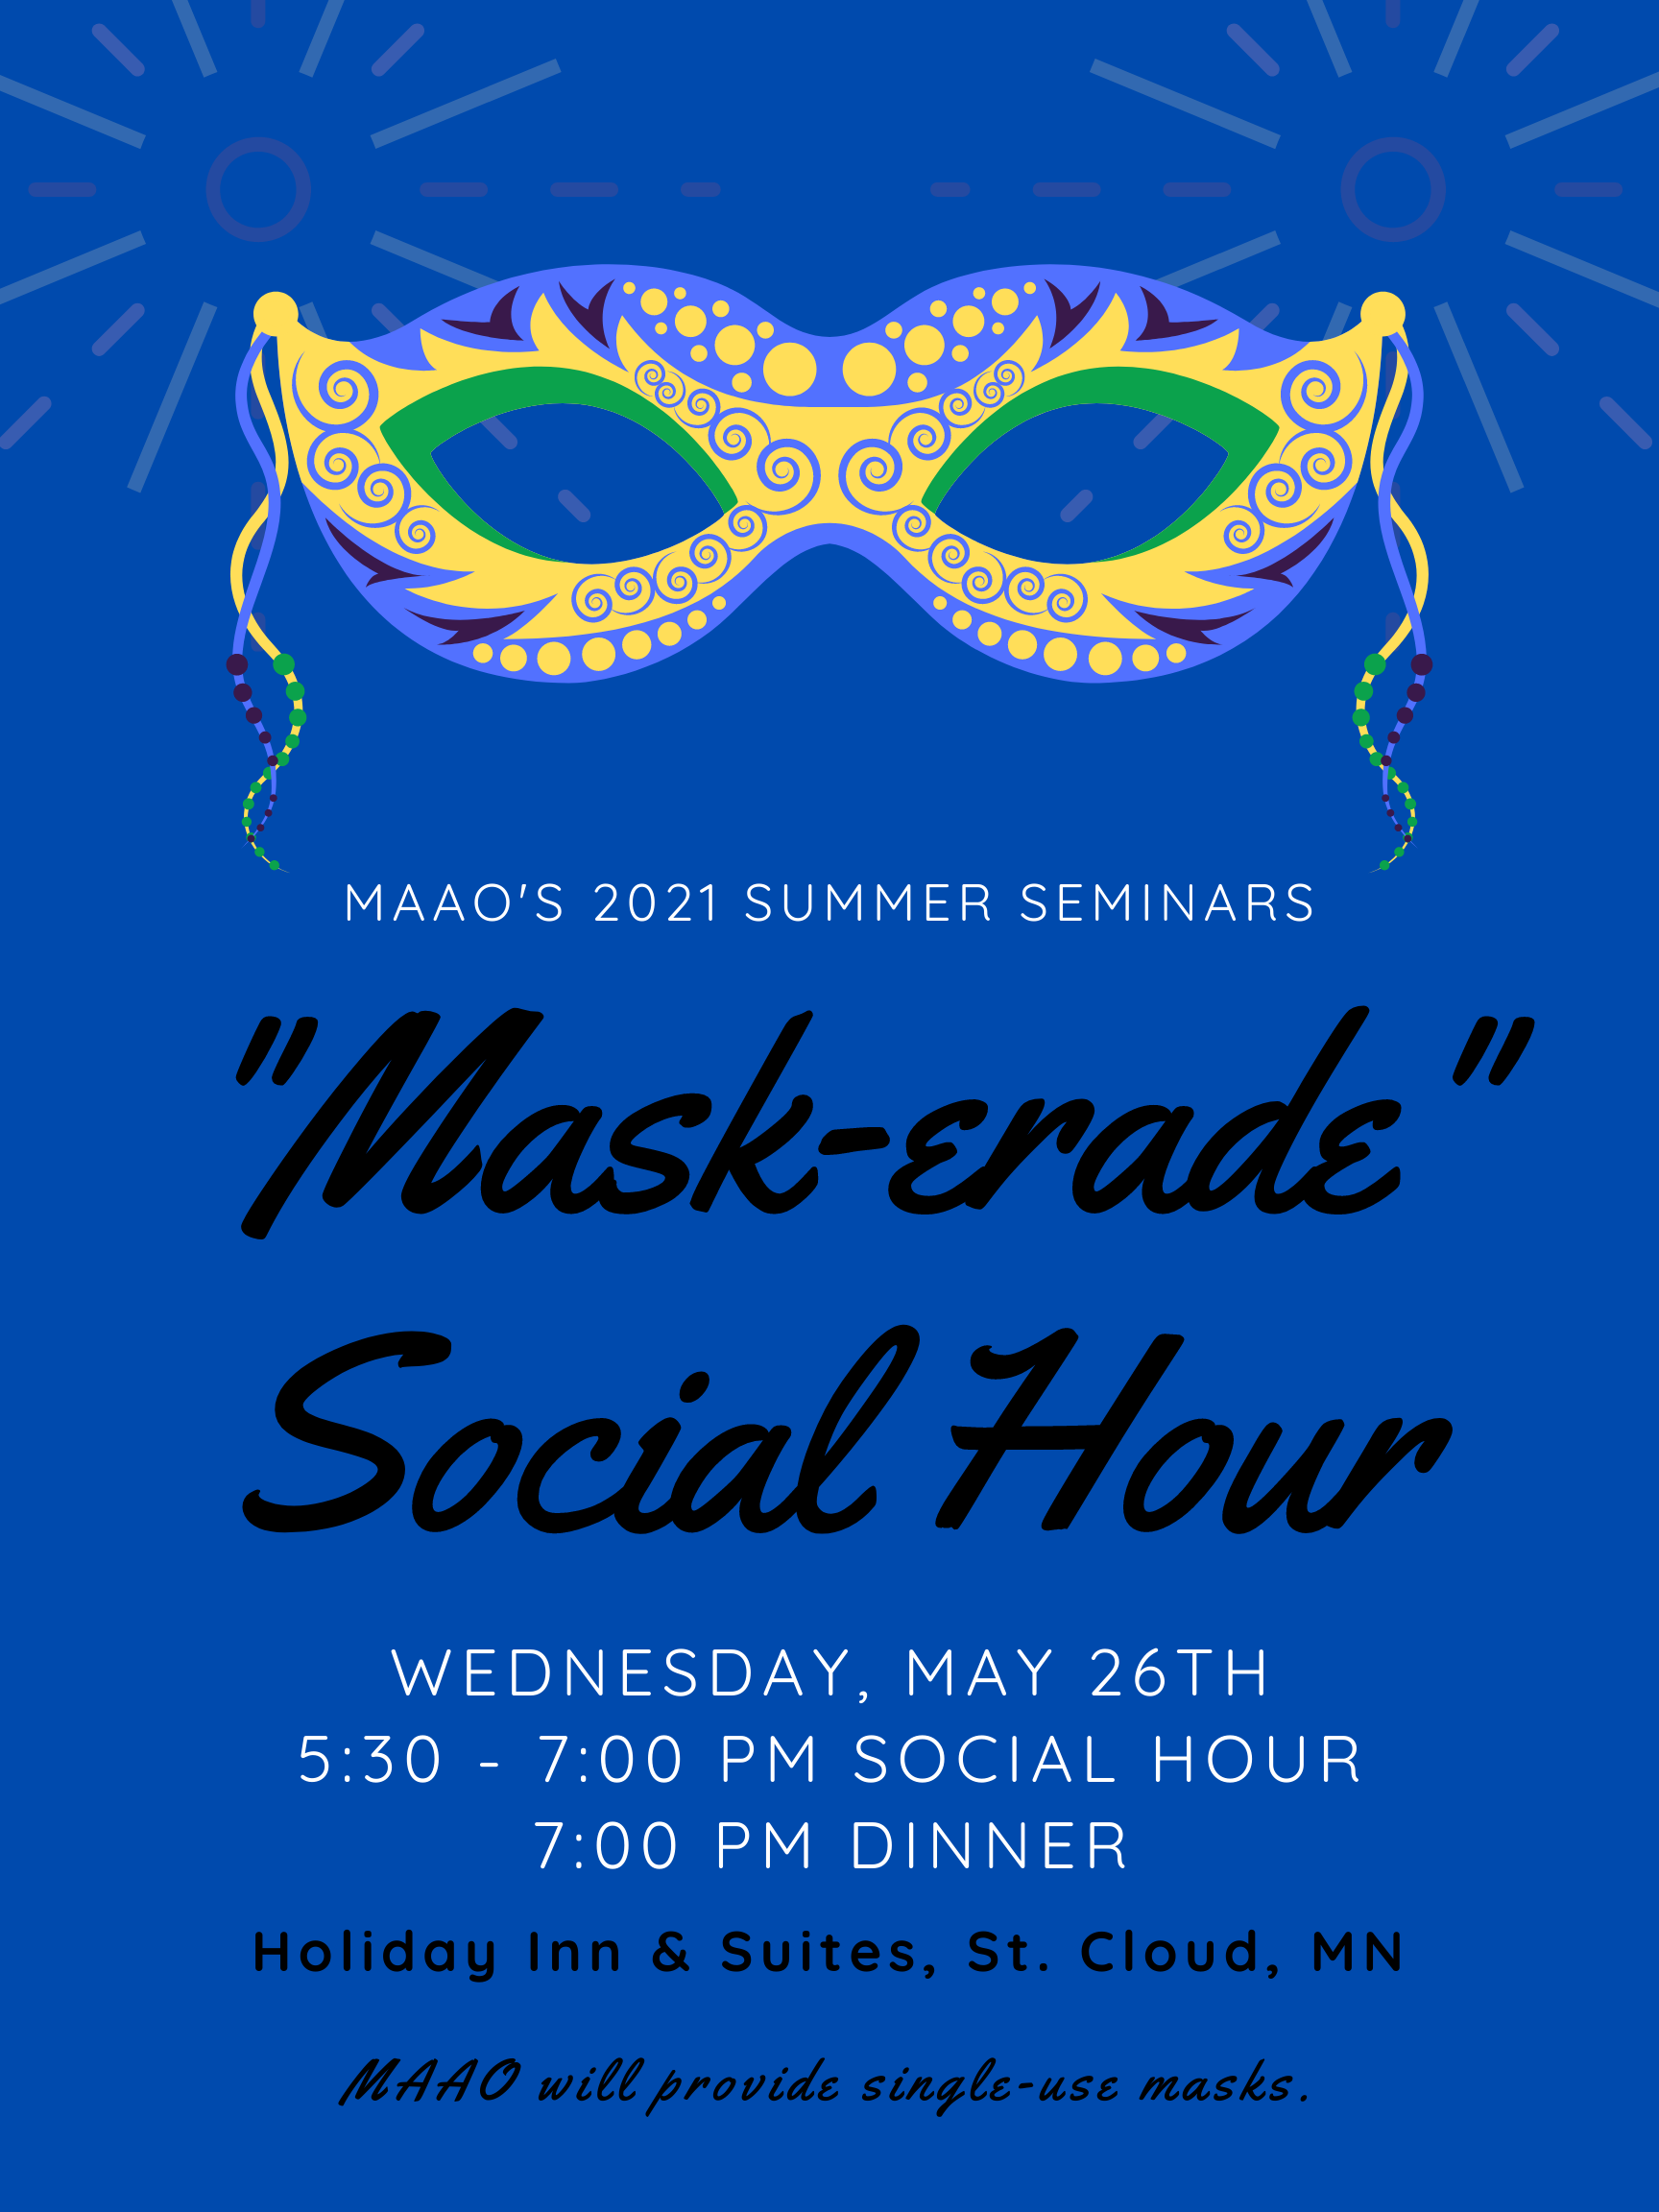 Mask-erade social hour